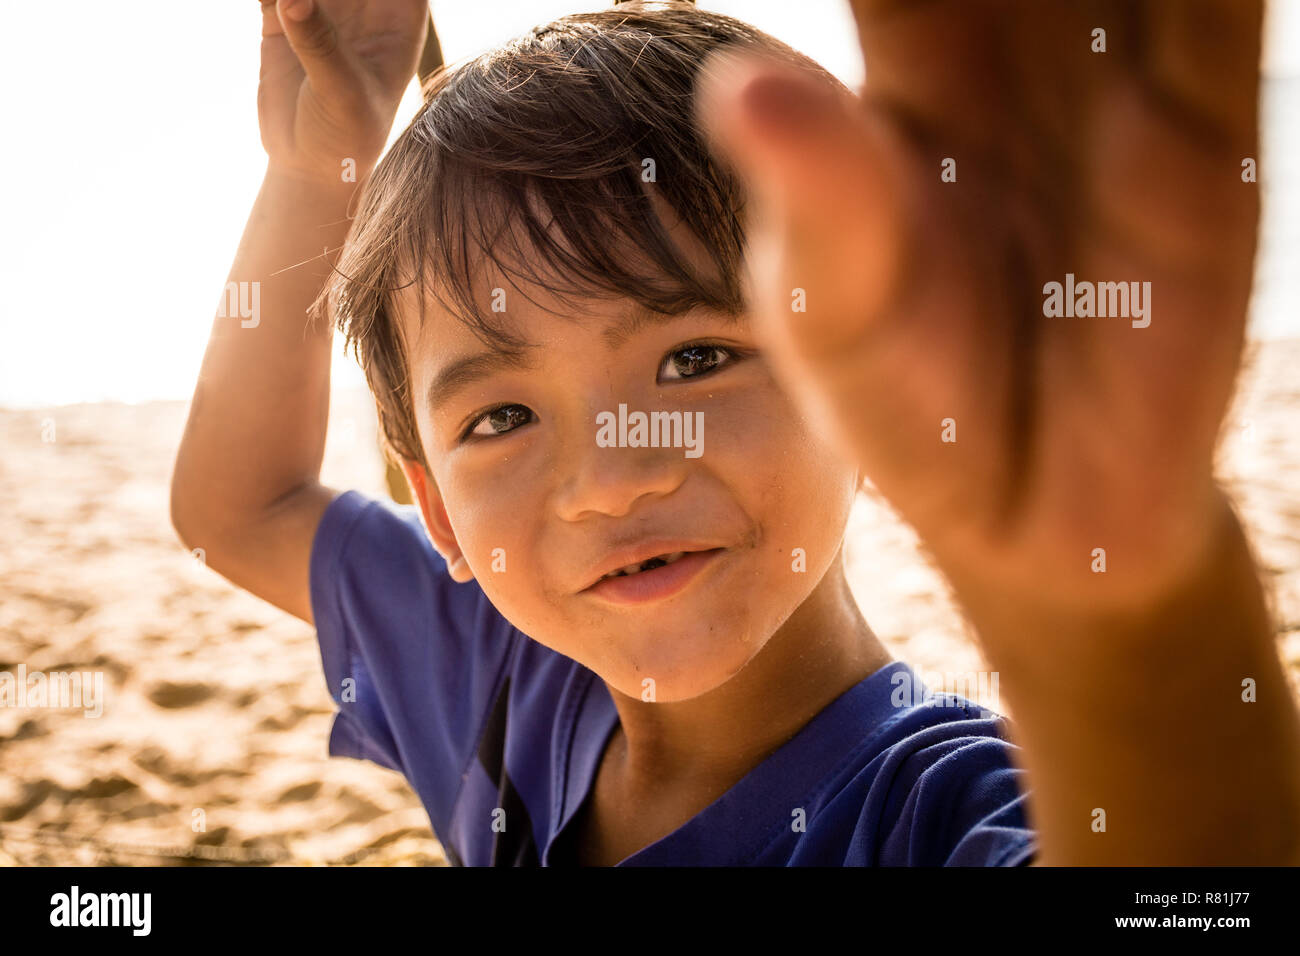 A young local boy from Cambodia, playfully looking at and grabbing at the camera. - Stock Image